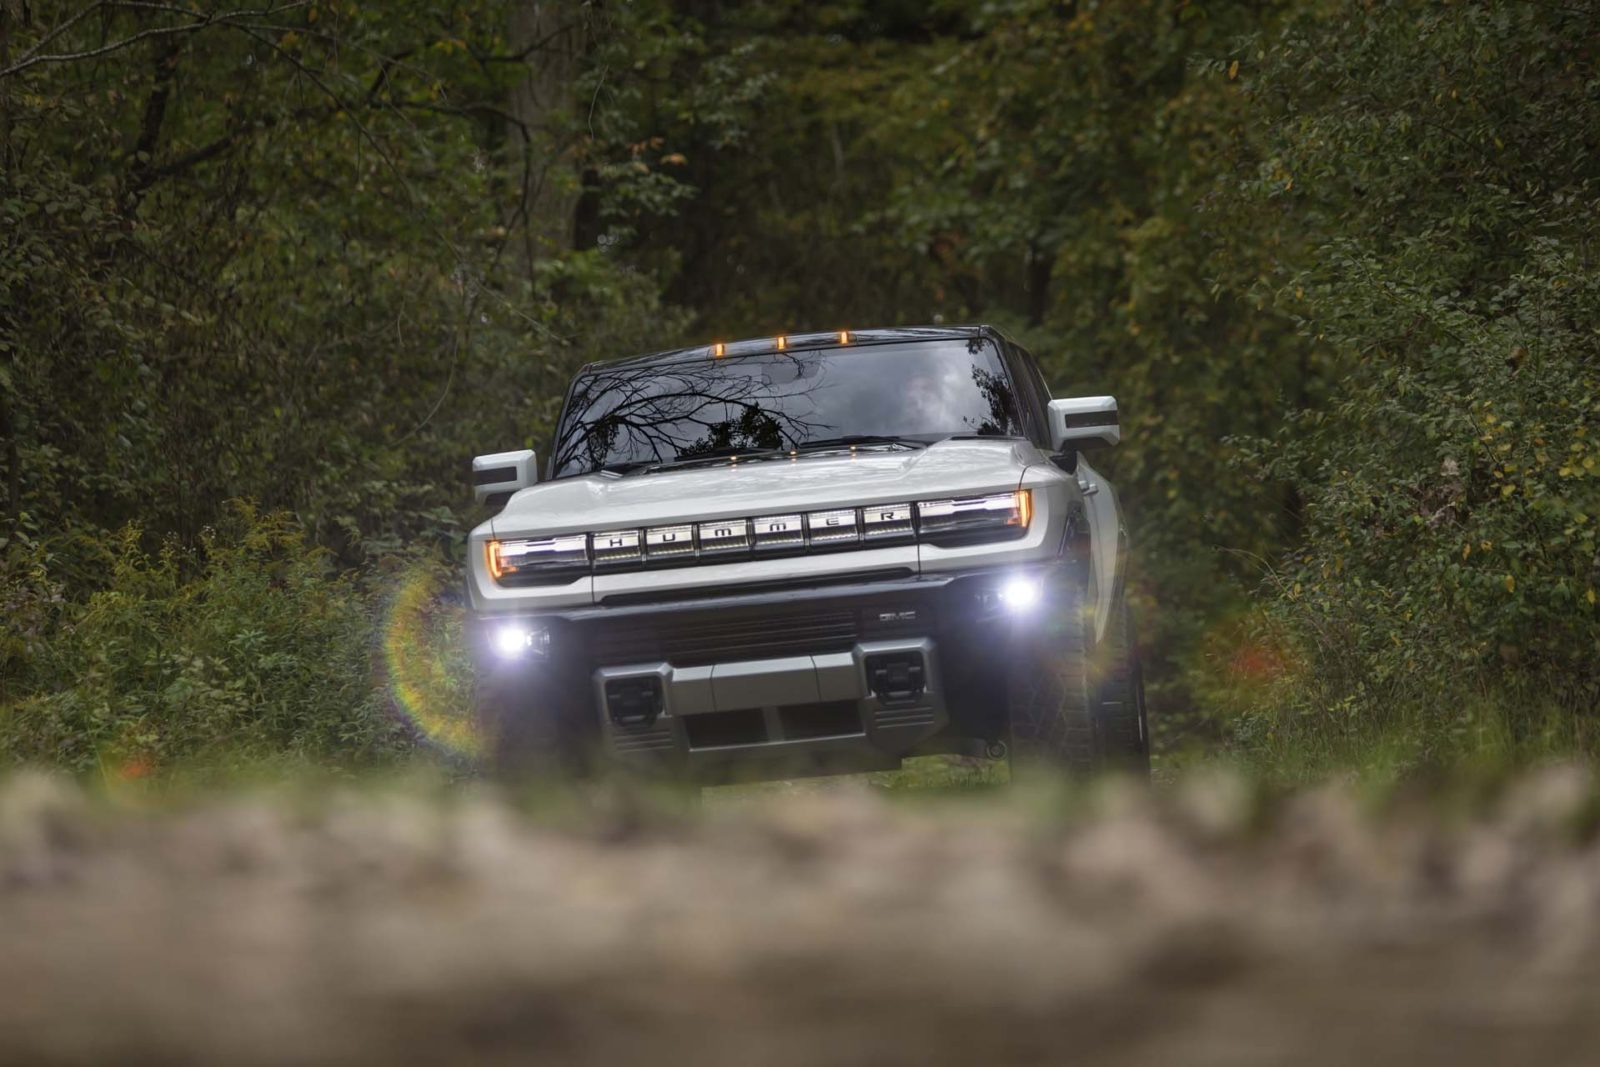 gmc-hummer-ev-pickup-truck-to-weigh-over-9,000-lbs-and-run-0-60-mph-in-about-3.0-seconds